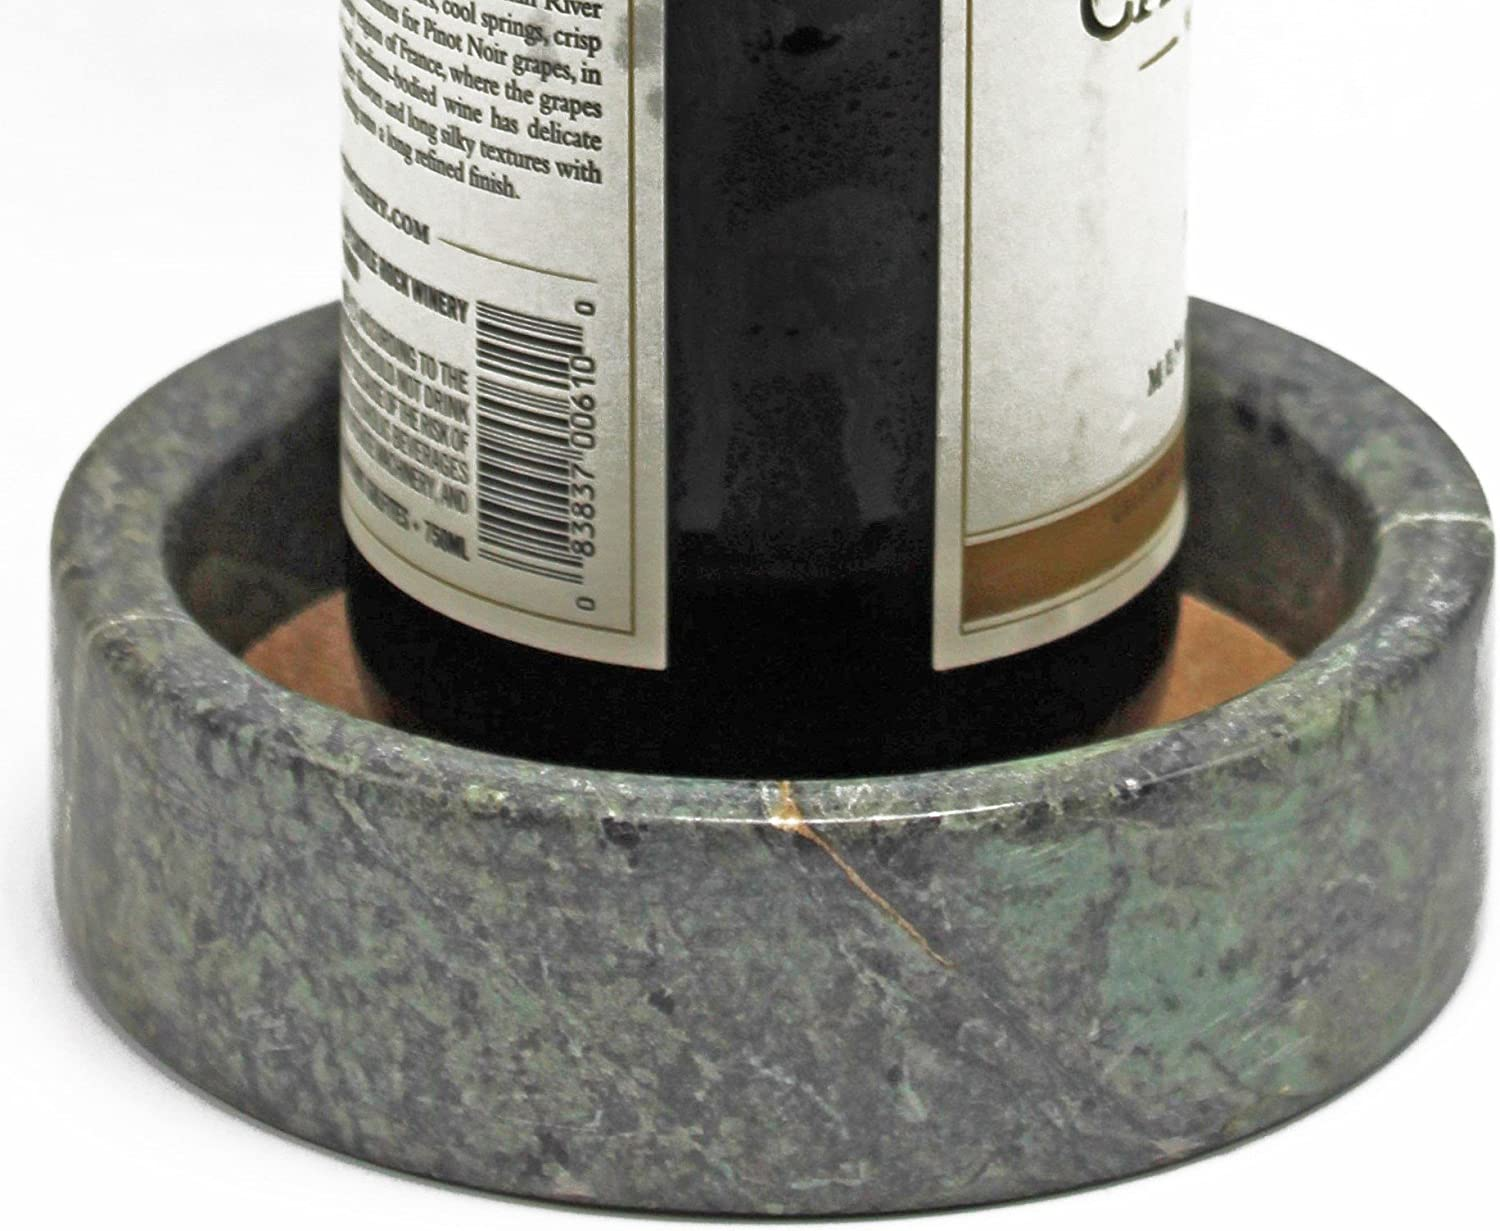 CraftsOfEgypt Green - Marble Wine Bottle Coaster - Coaster Absorbent Cork Holder Bottles and Any Occasion